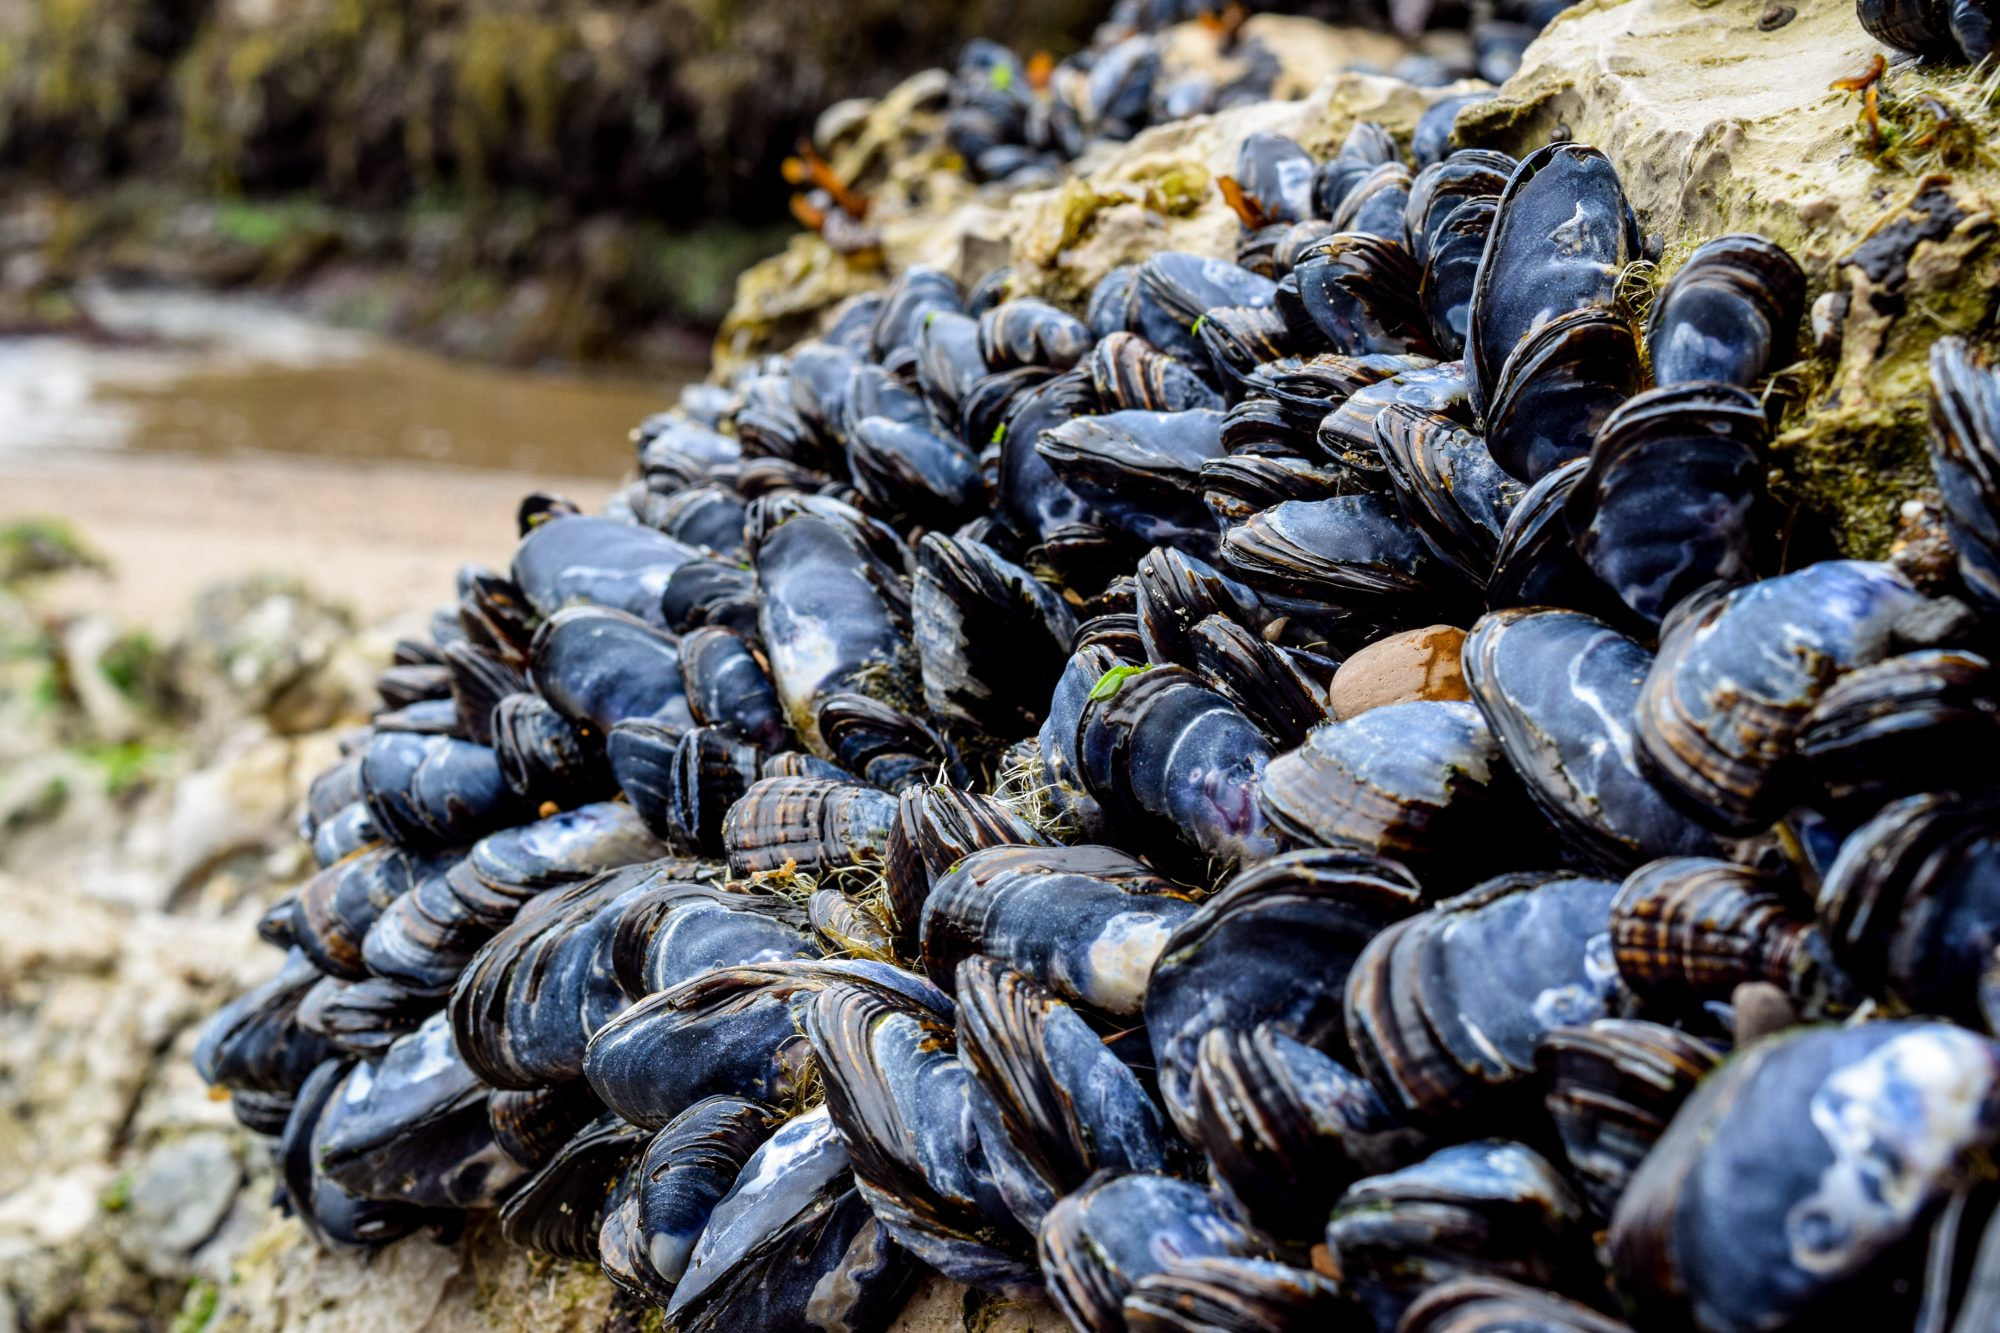 mussels growing on rock at beach